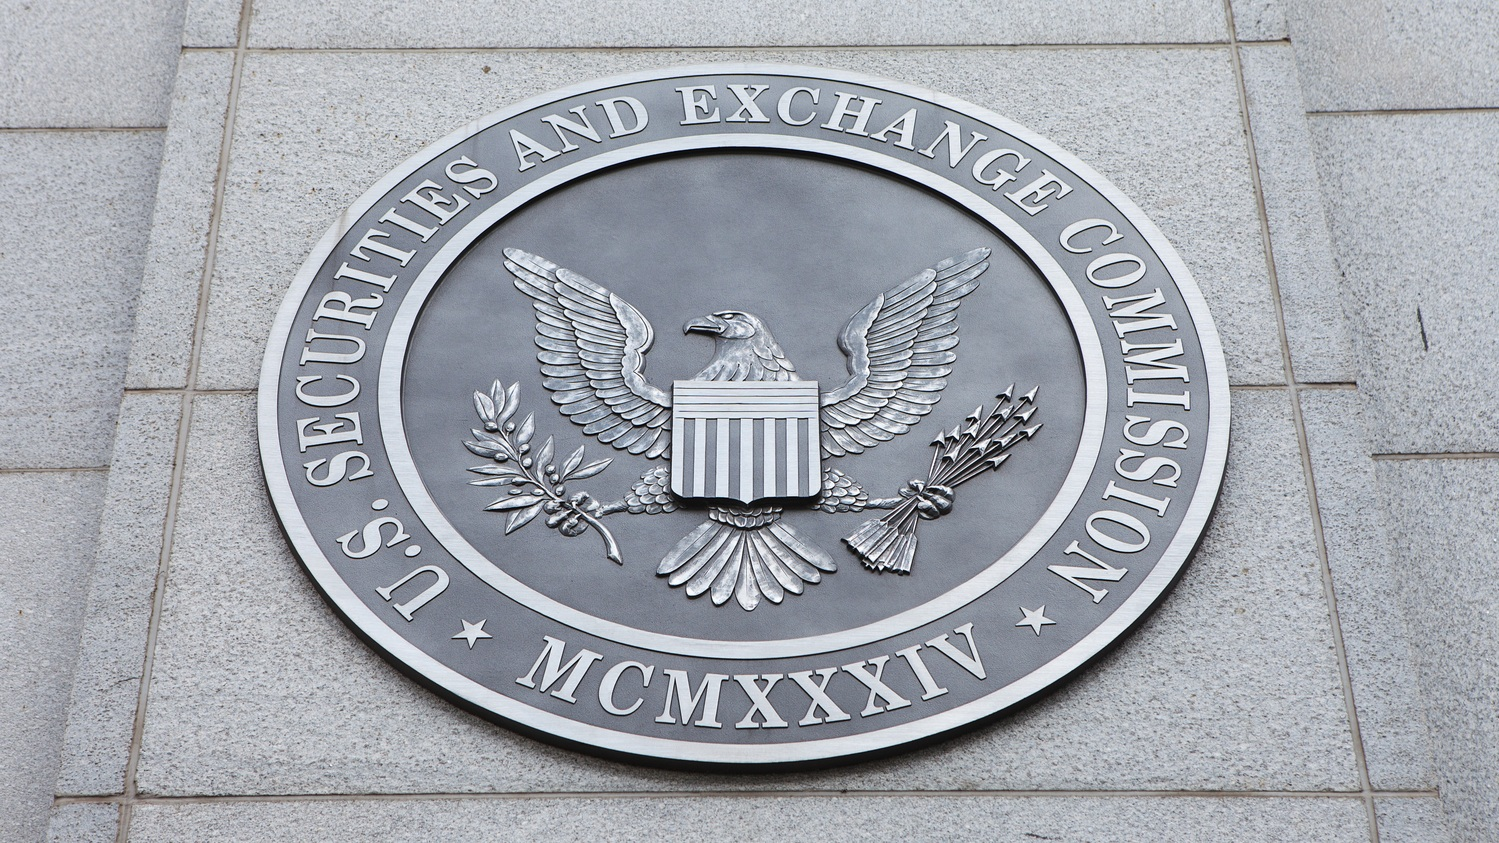 https://www.coindesk.com/sec-settles-securities-registration-charges-against-2-ico-startups